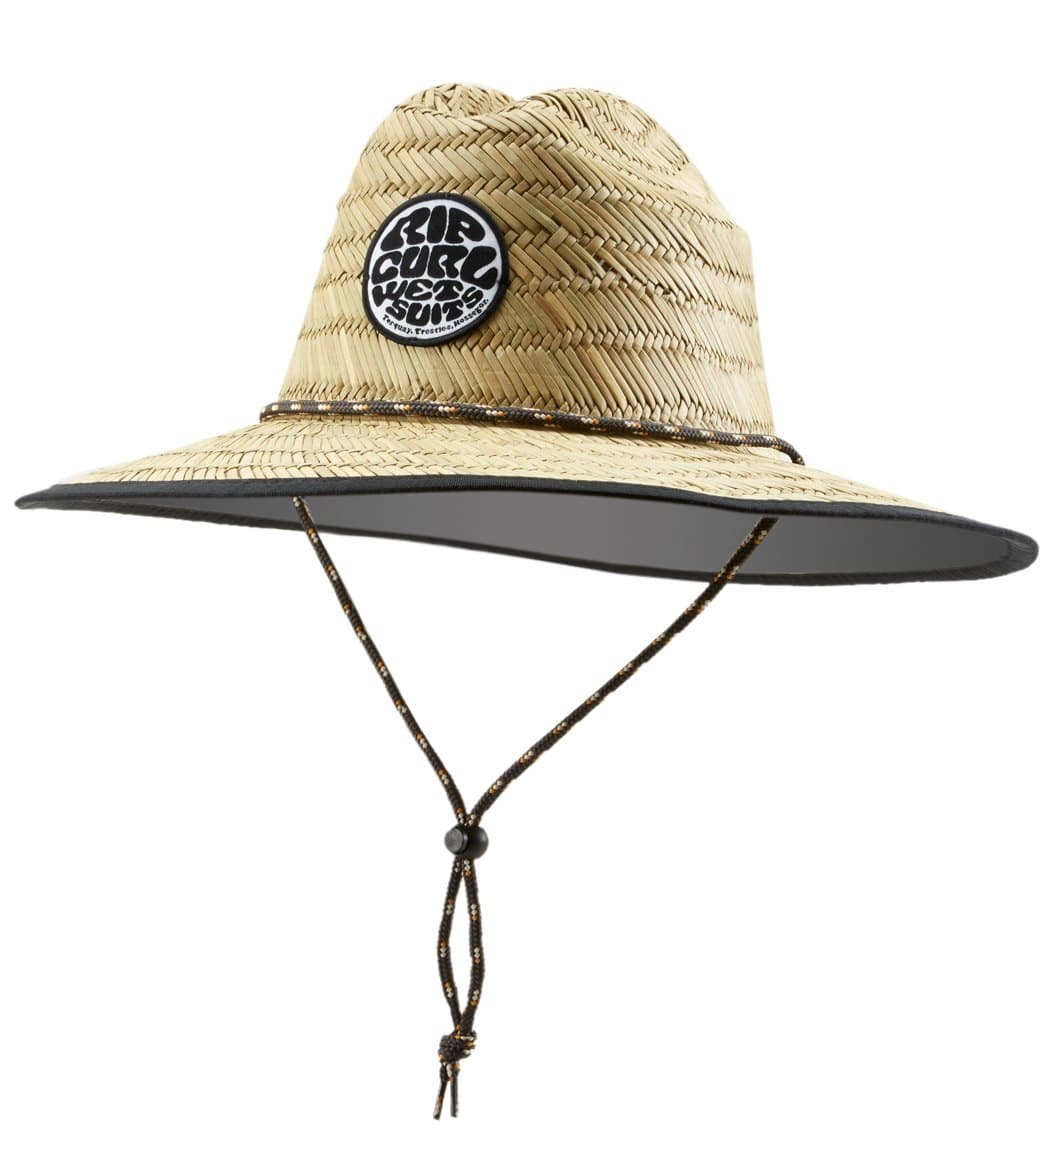 03af89b4dd5dcb Rip Curl Men's Baywatch Straw Hat at SwimOutlet.com